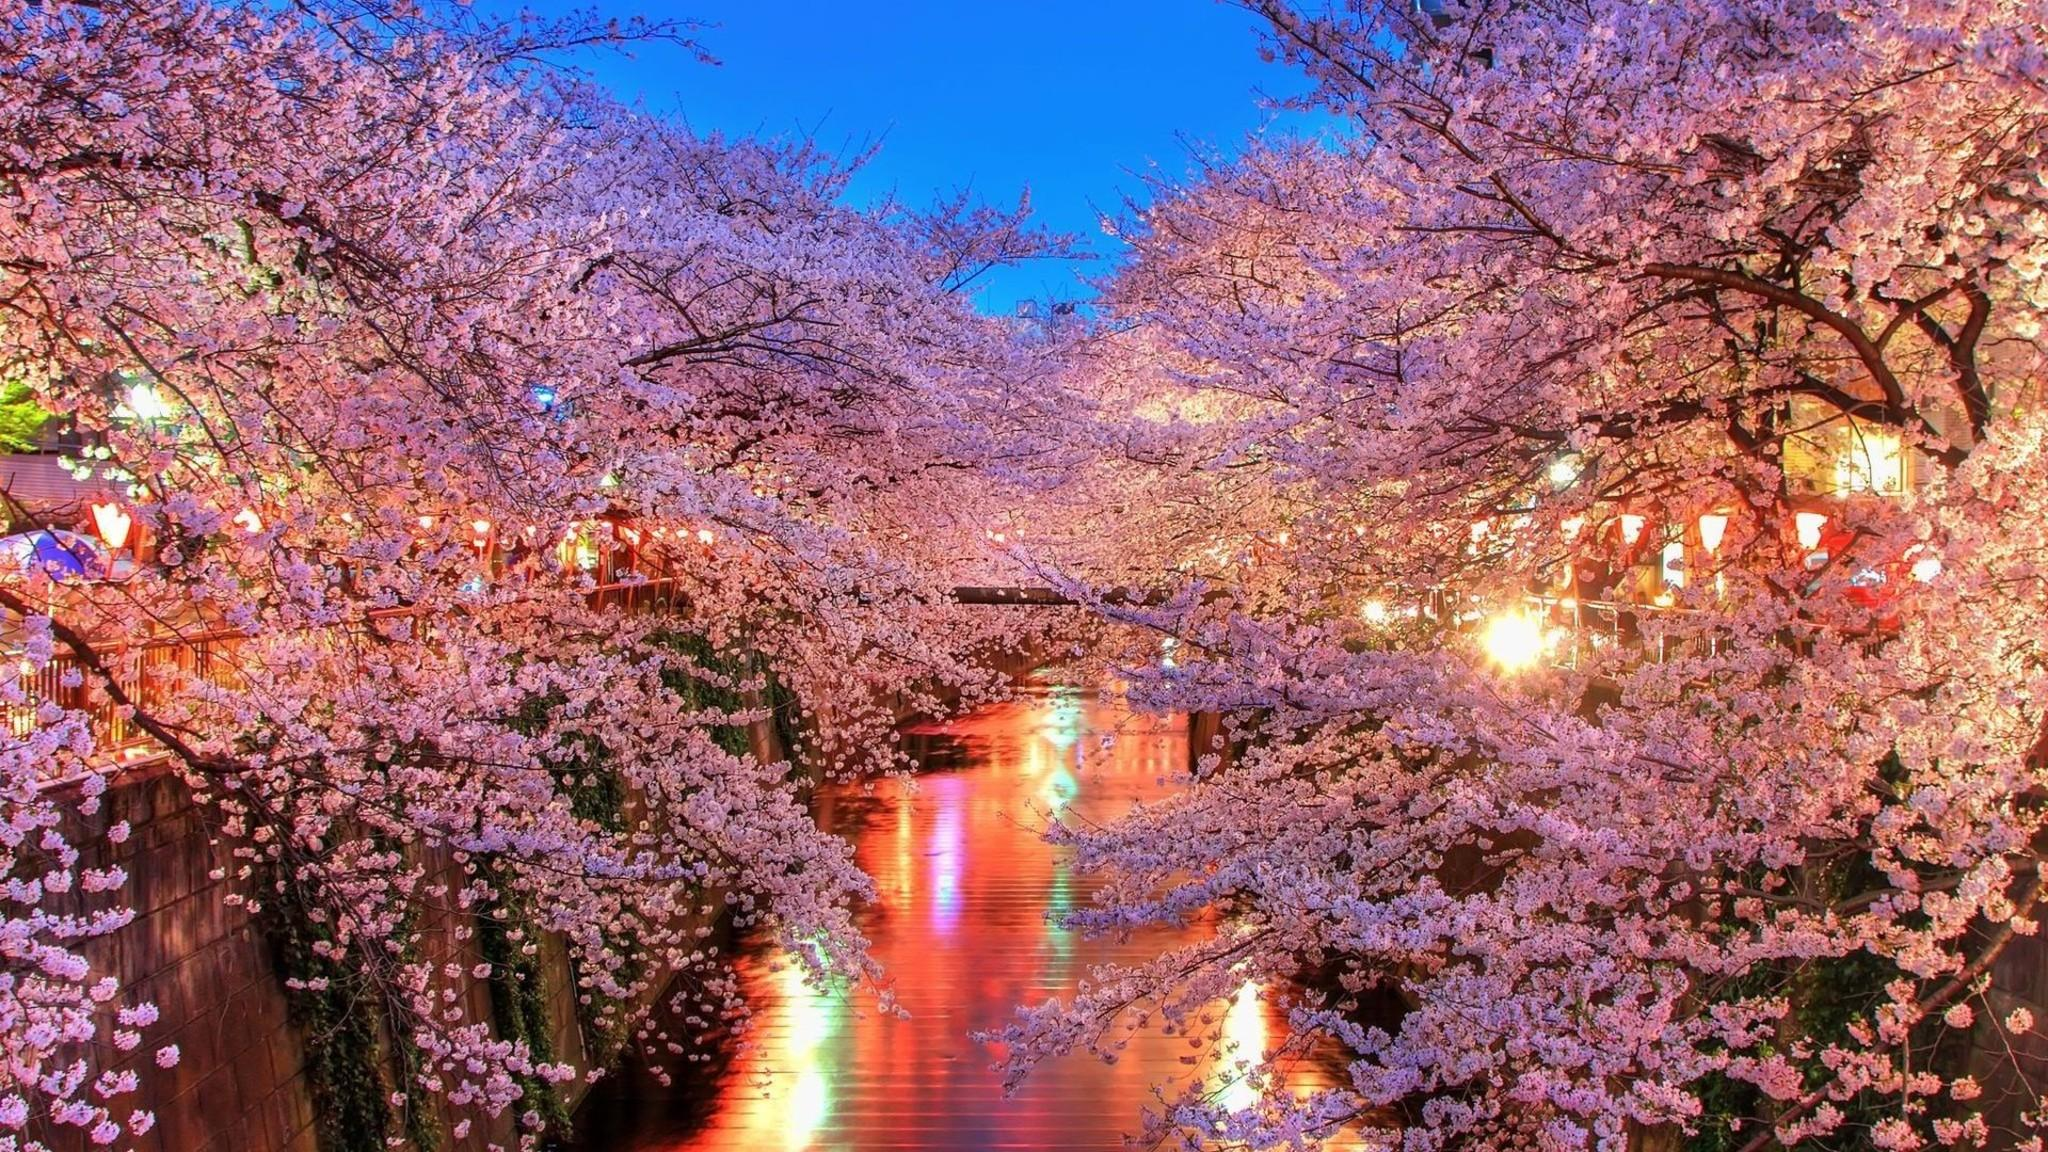 2048x1152 Cherry Blossom Trees 2048x1152 Resolution HD 4k Wallpapers